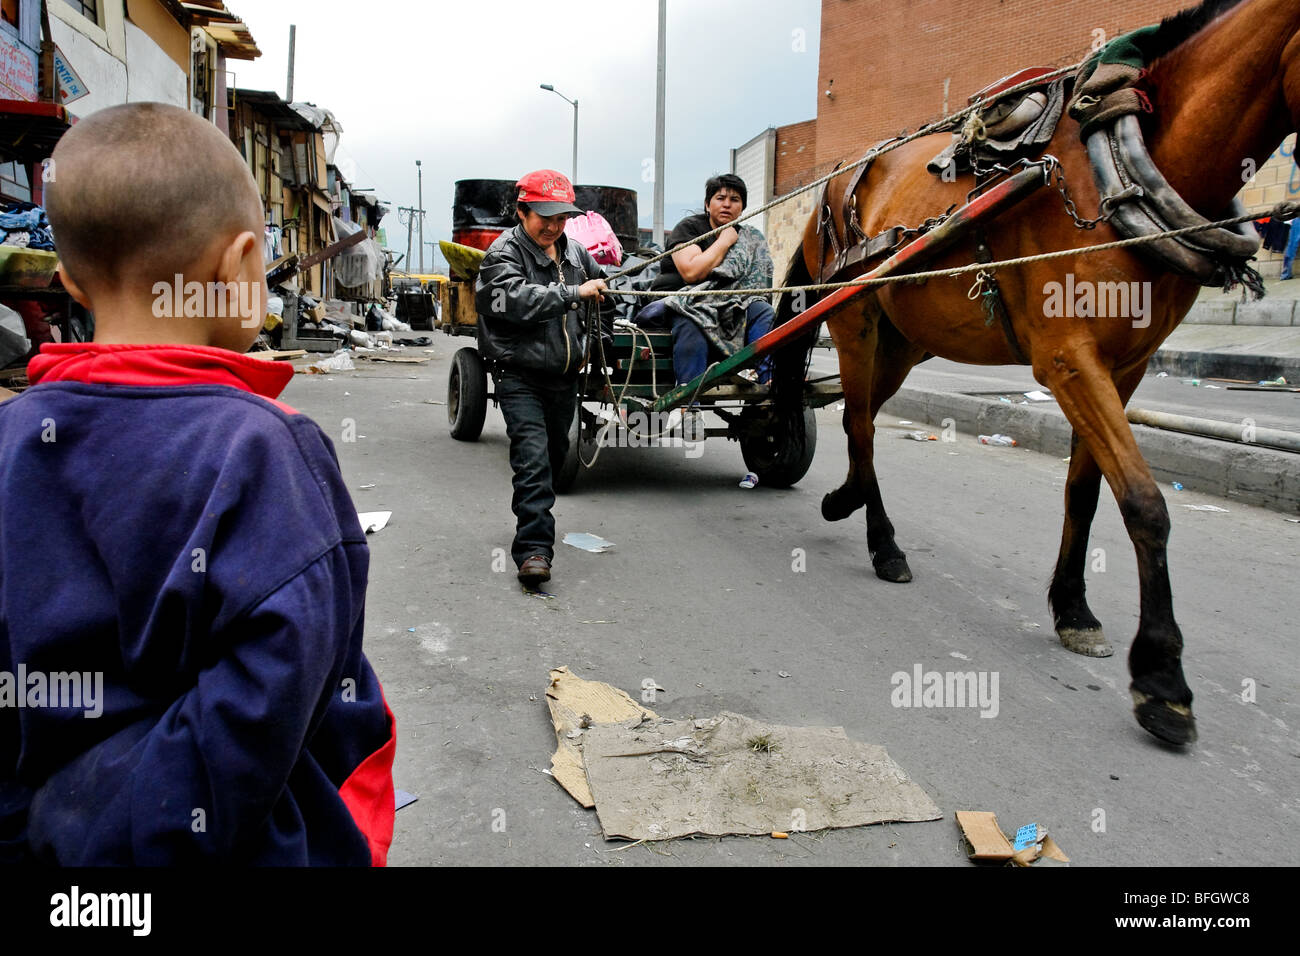 The armed conflict together with lack of social network caused appearence of illegal invasion slums in urban zones - Stock Image